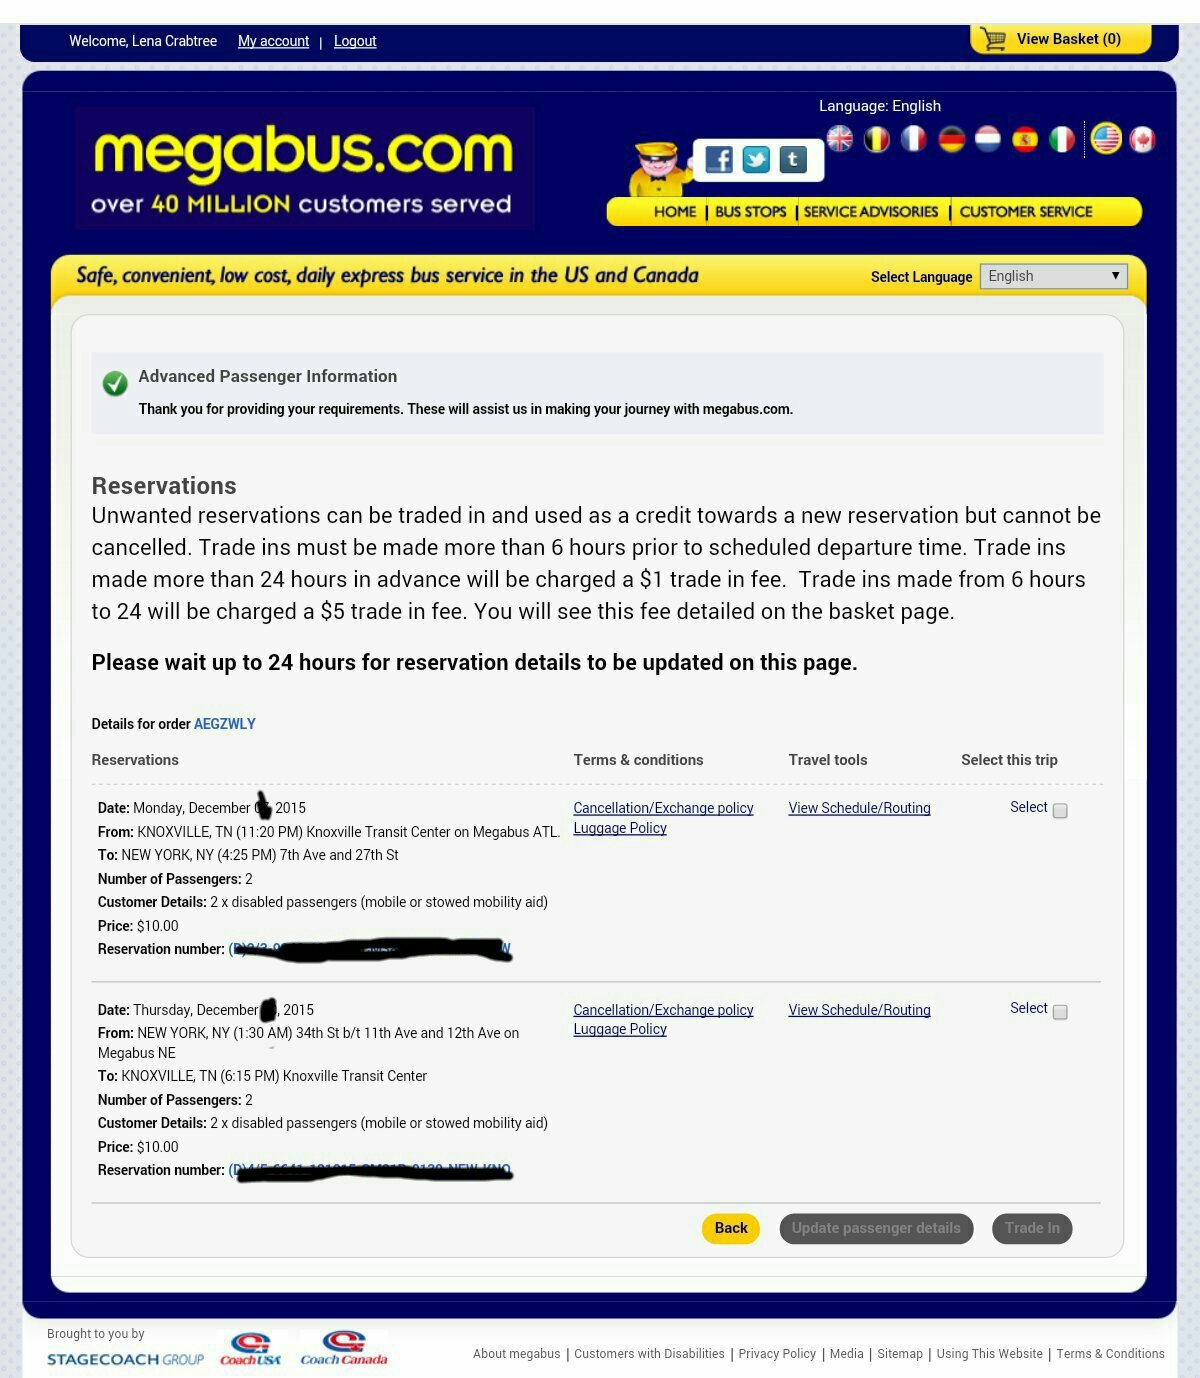 Youve Been Reviewed: Megabus Knoxville to New York City